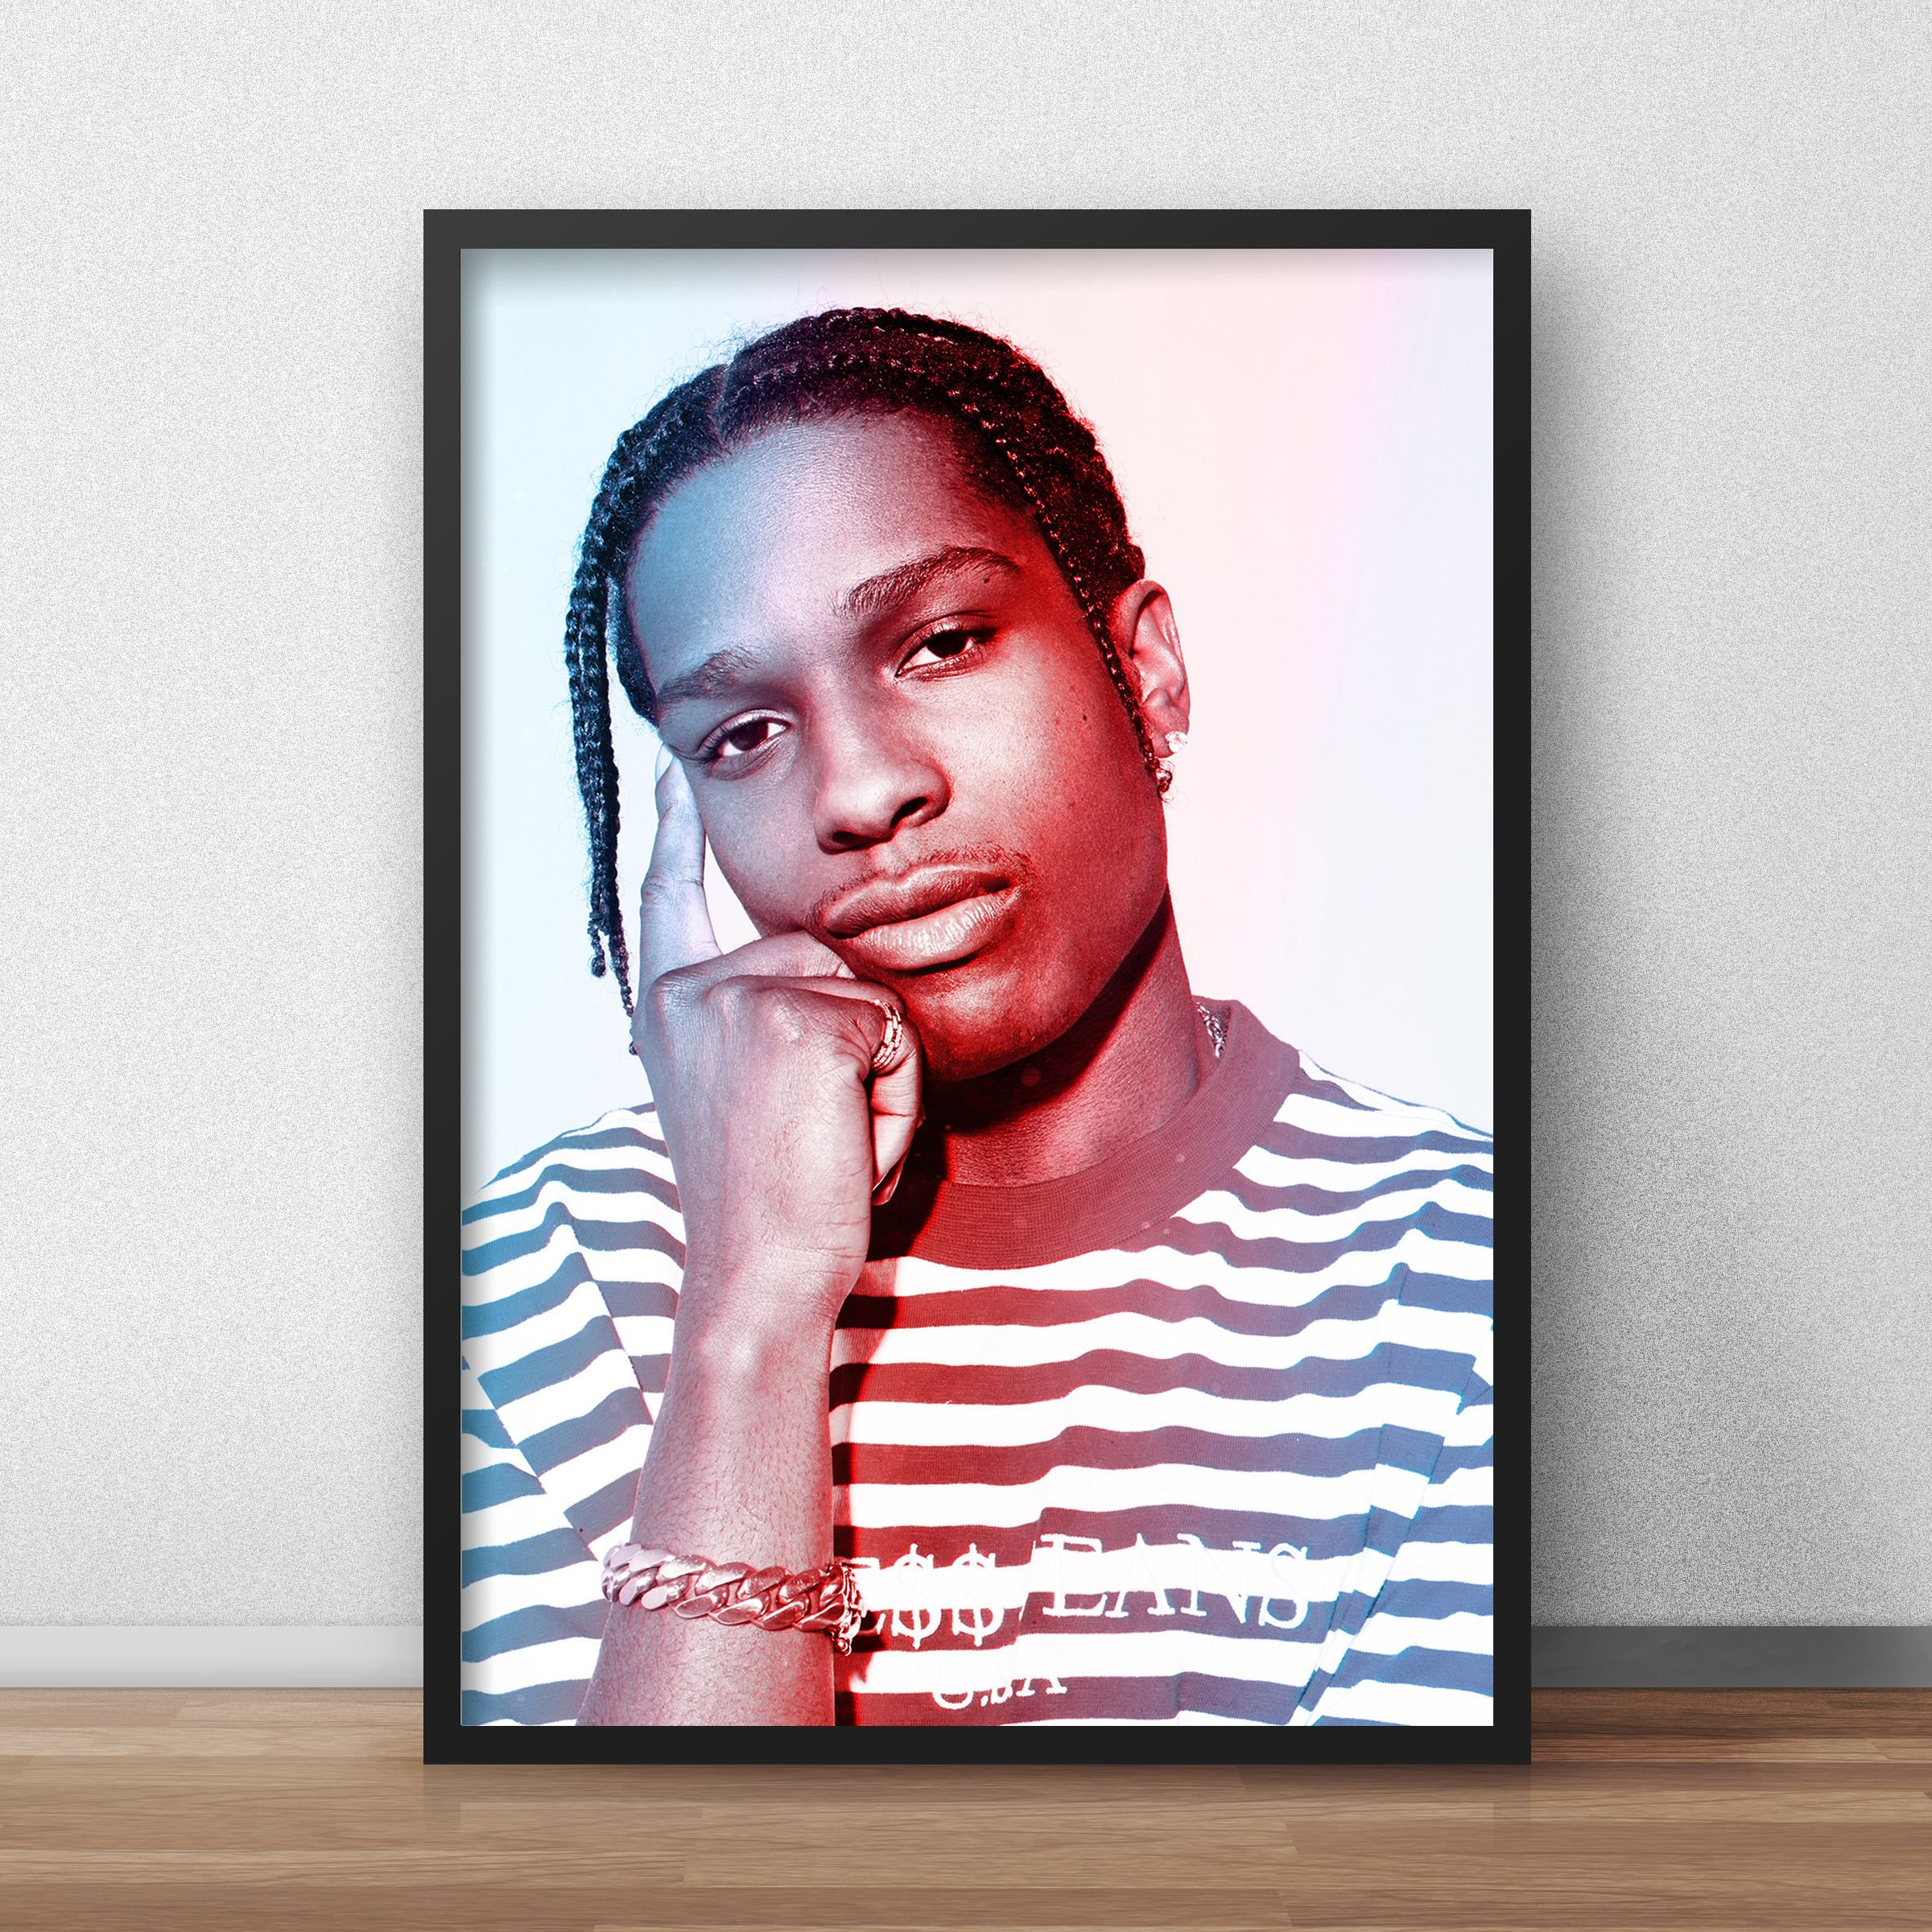 Asap Rocky Rapper Wall Tapestry A$AP Tripping Wall Tapestry